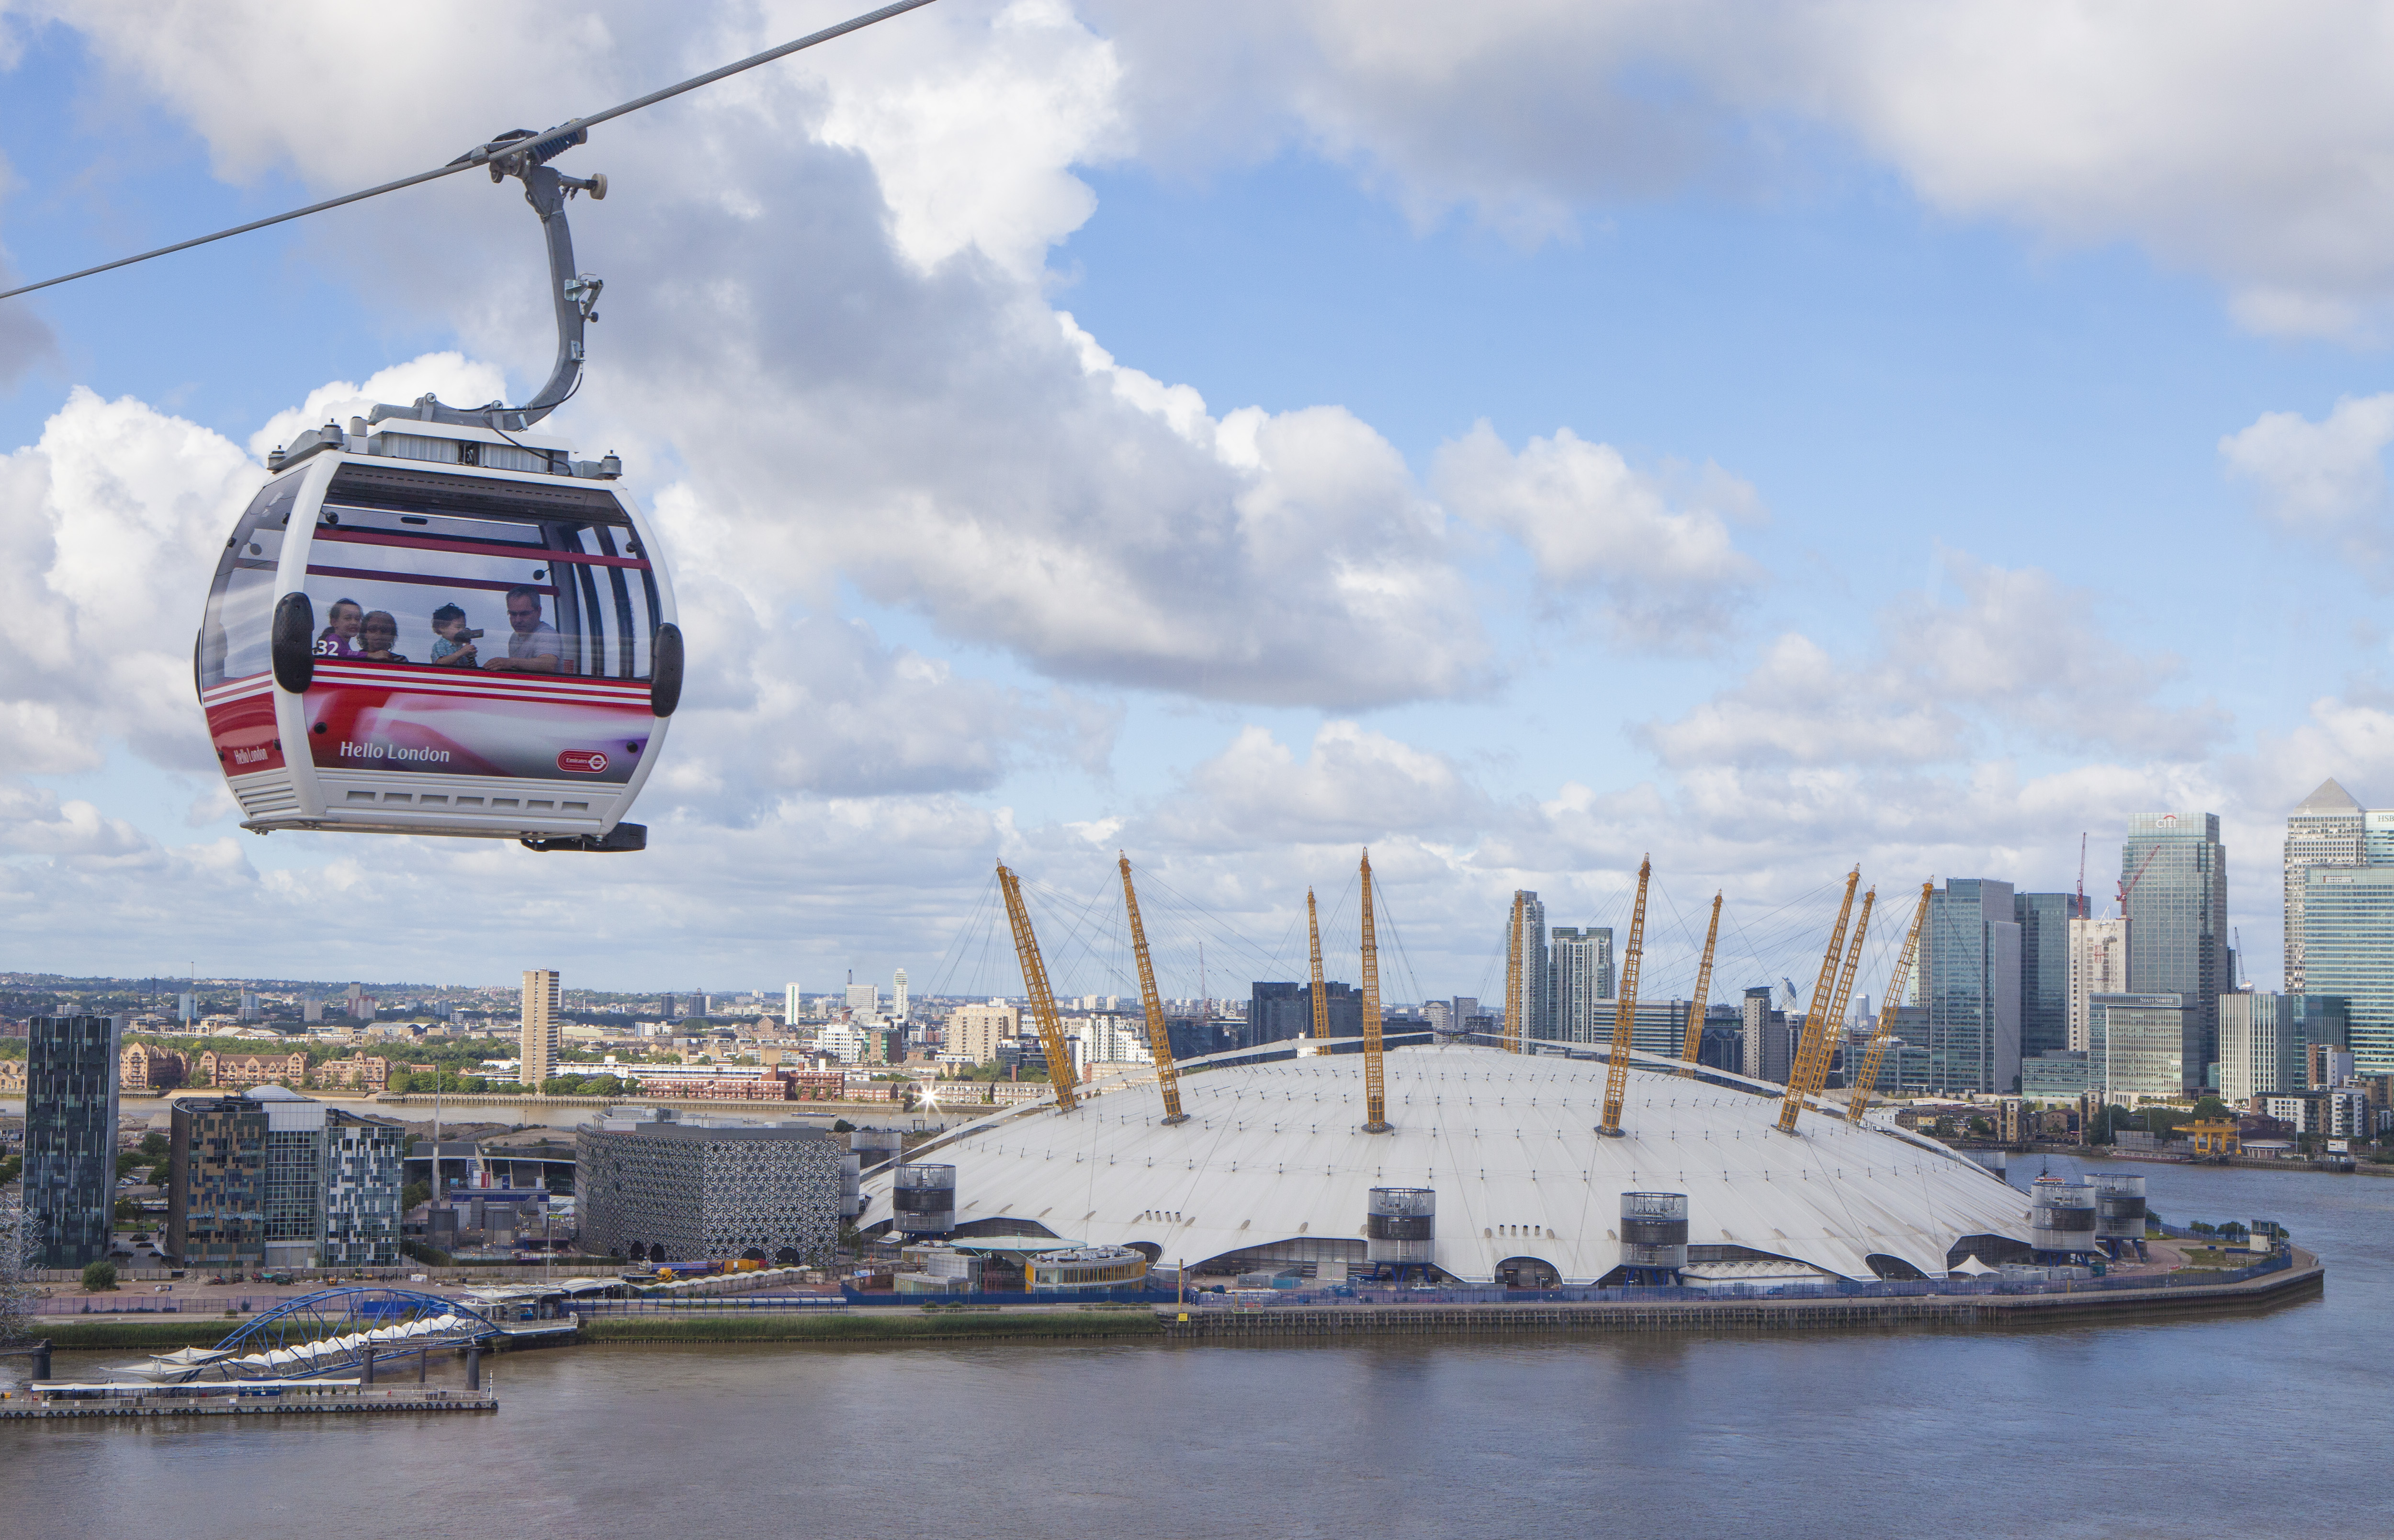 The Emirates Airline, Cable Car